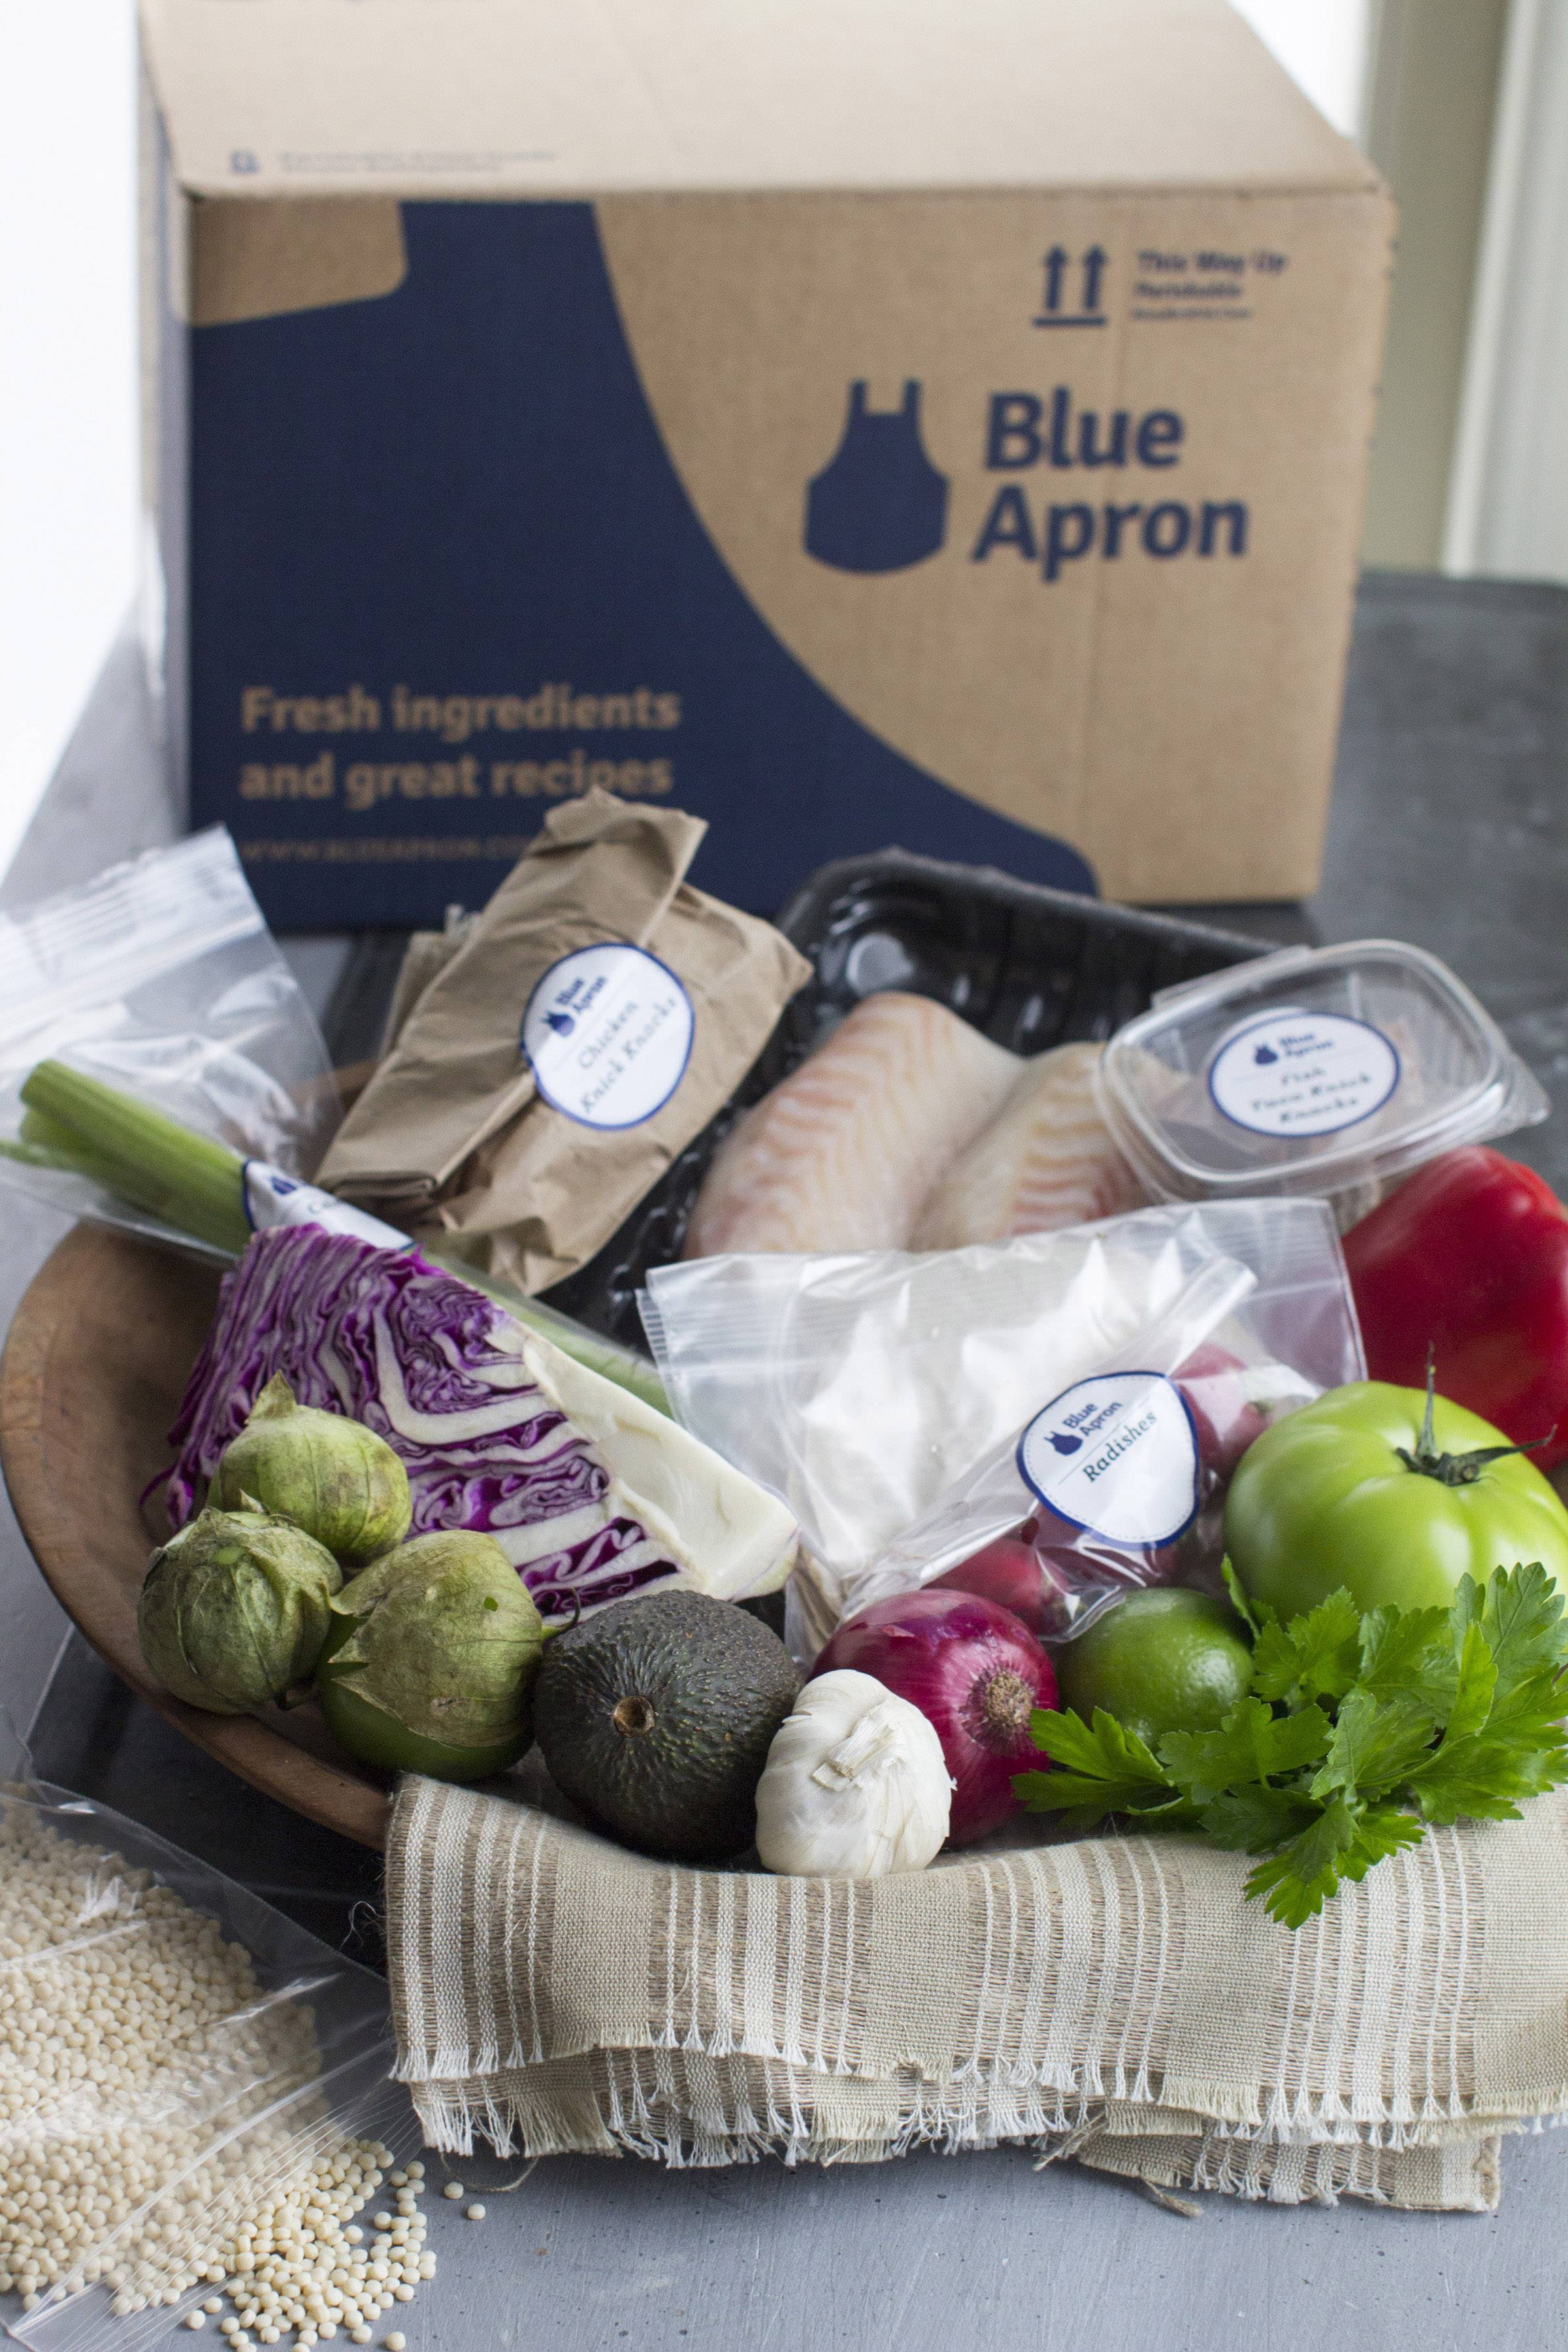 The real reason Blue Apron's meal kits are so expensive has little to do with what's in the box. Industry analysts estimate that between 20 and 30 percent of the price of a meal kit is spent just getting it to your house.